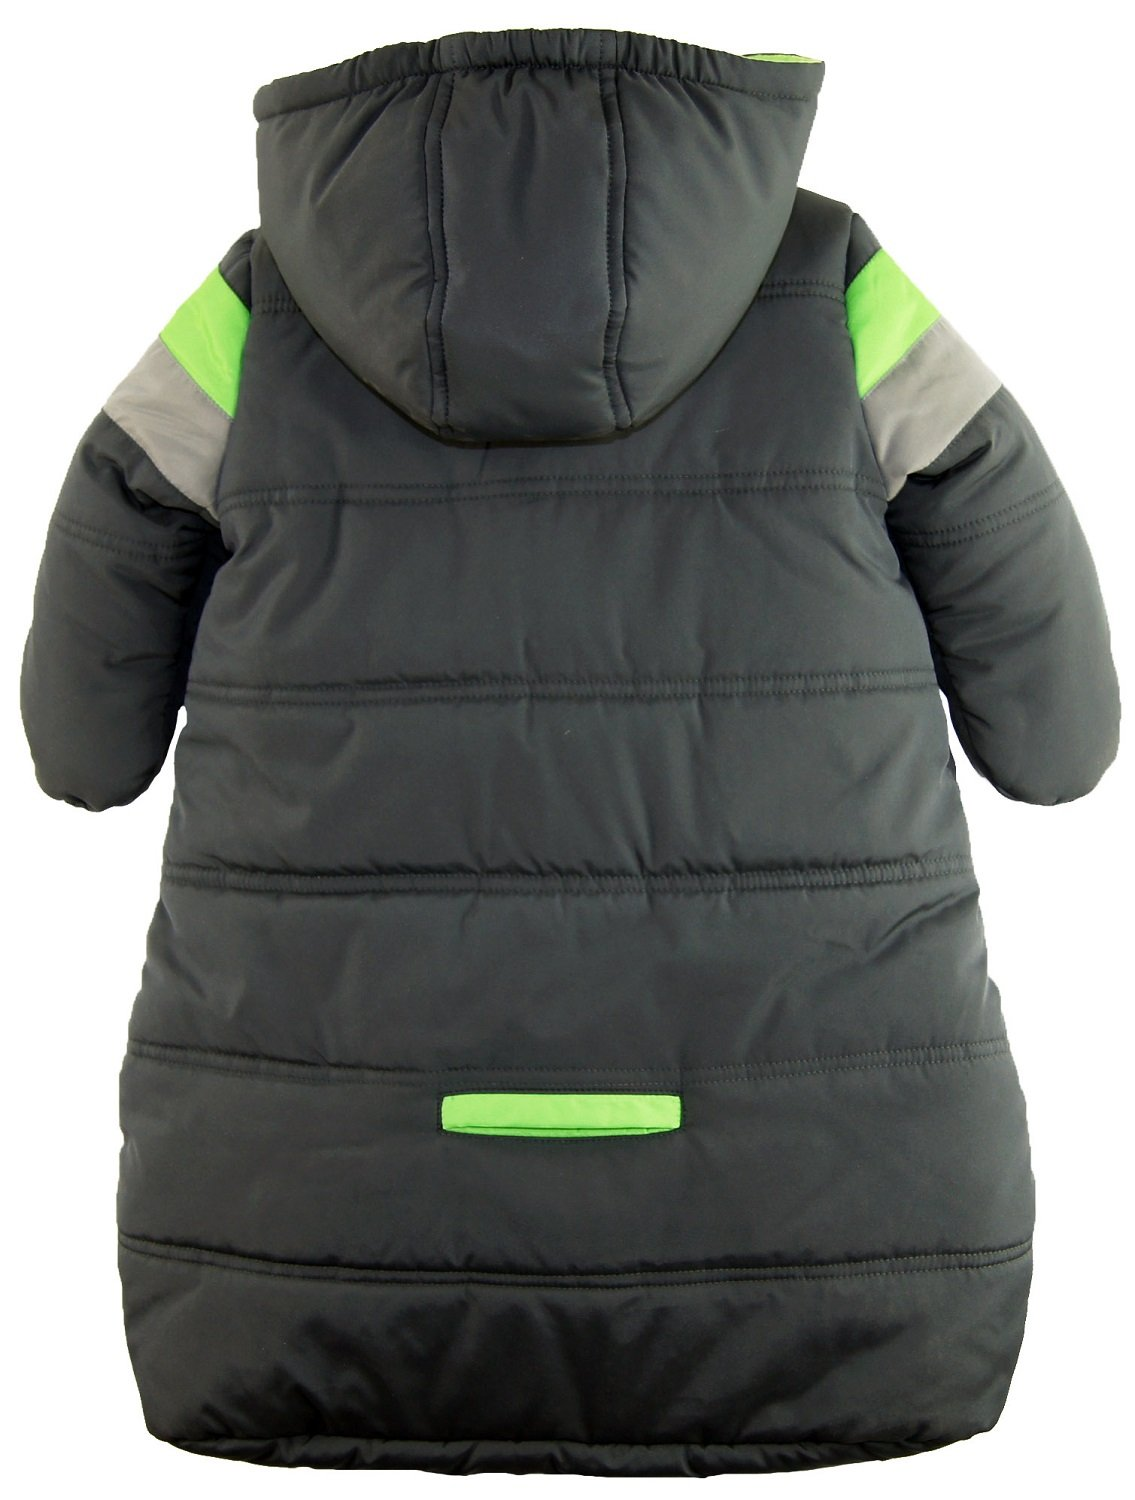 iXtreme Baby Boys Snowsuit Colorblock Stripes Puffer Carbag, Grey, 3-6 Months by iXtreme (Image #3)